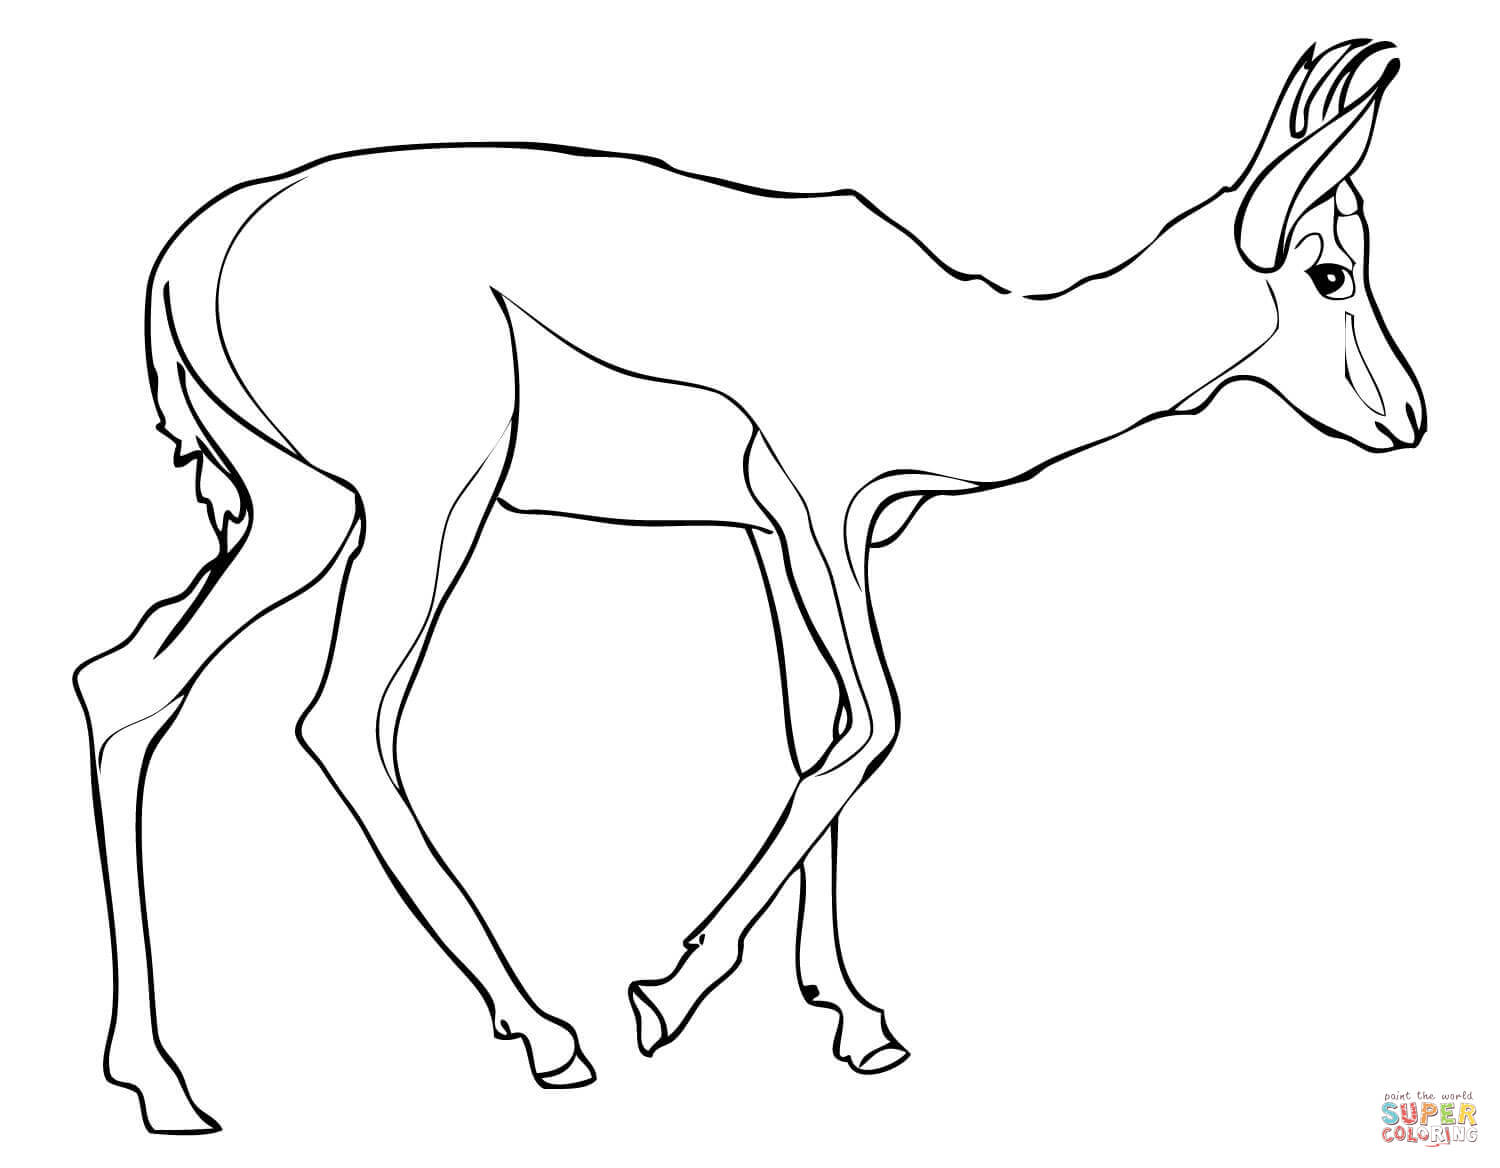 1500x1168 Springbok Coloring Page Free Printable Coloring Pages